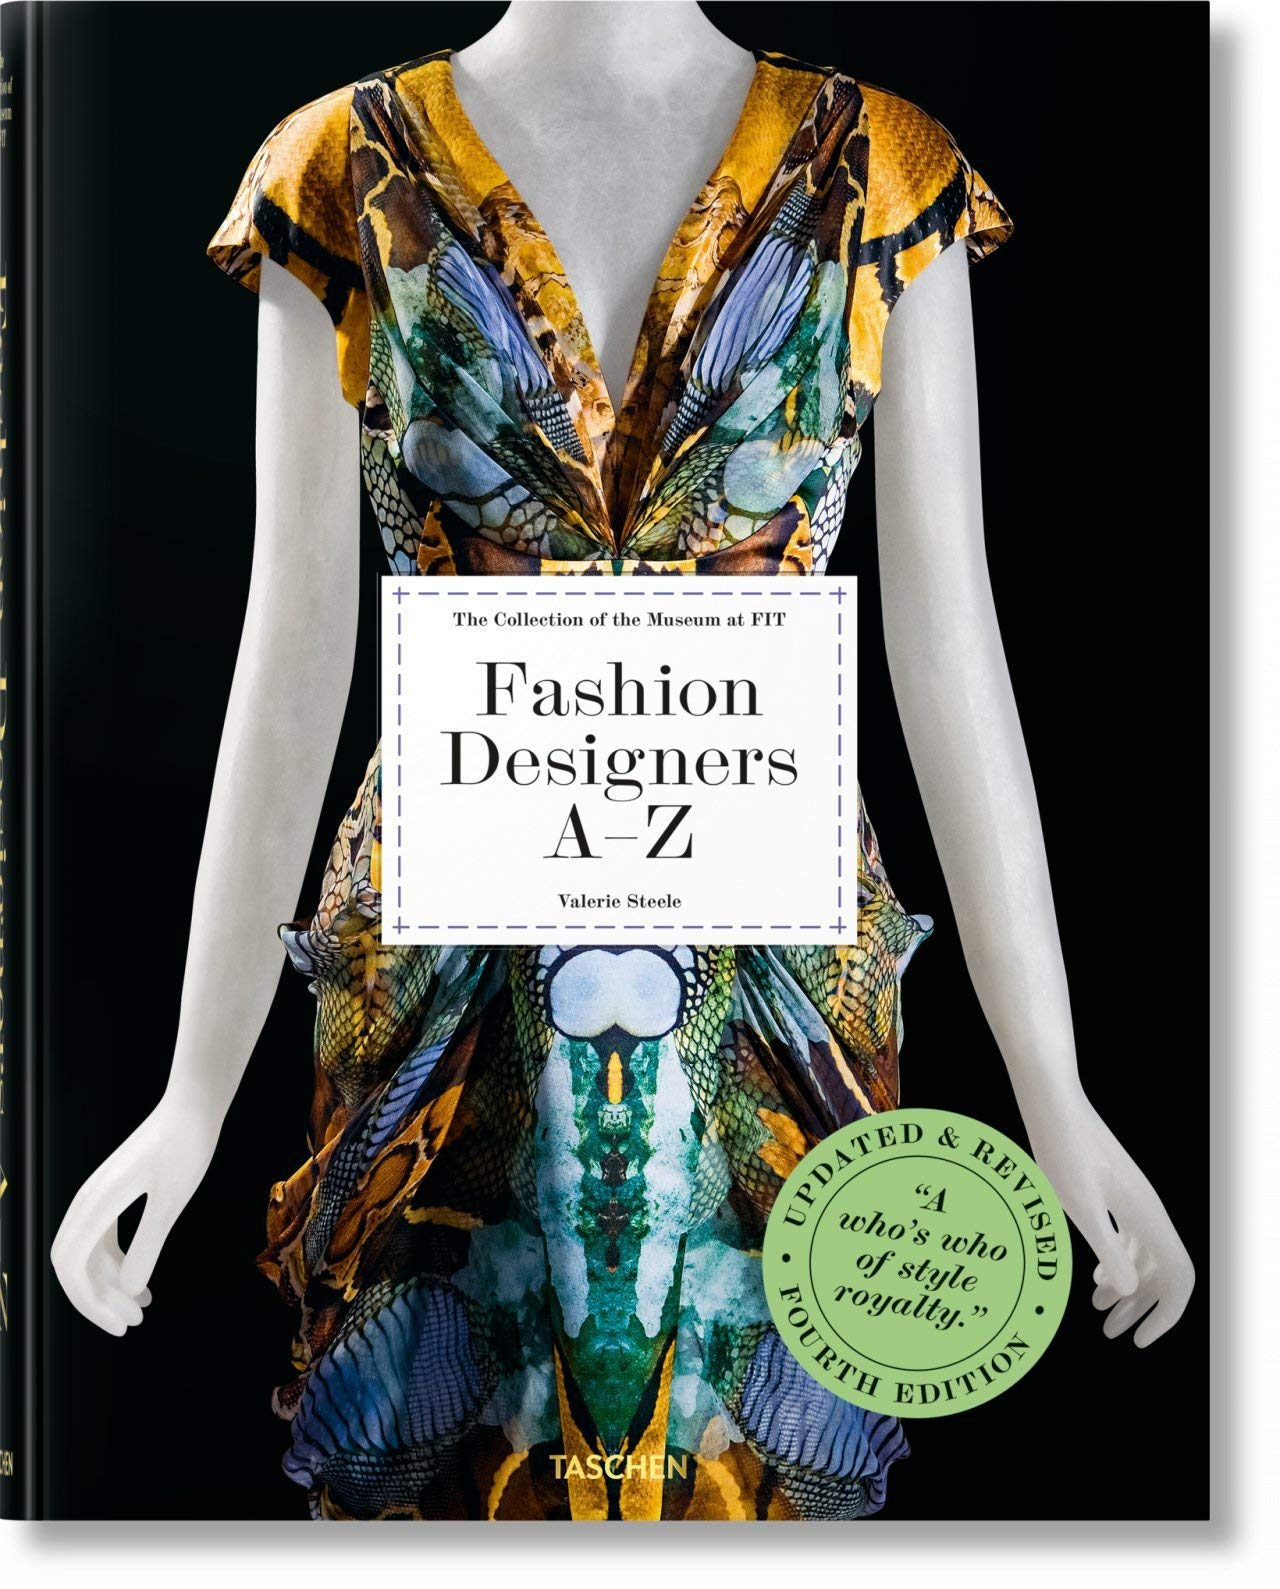 Fashion Designers A Z Updated 2020 Edition Prix Favorable English German And French Edition Menkes Suzy Steele Valerie Hill Colleen Nippoldt Robert 9783836578820 Amazon Com Books